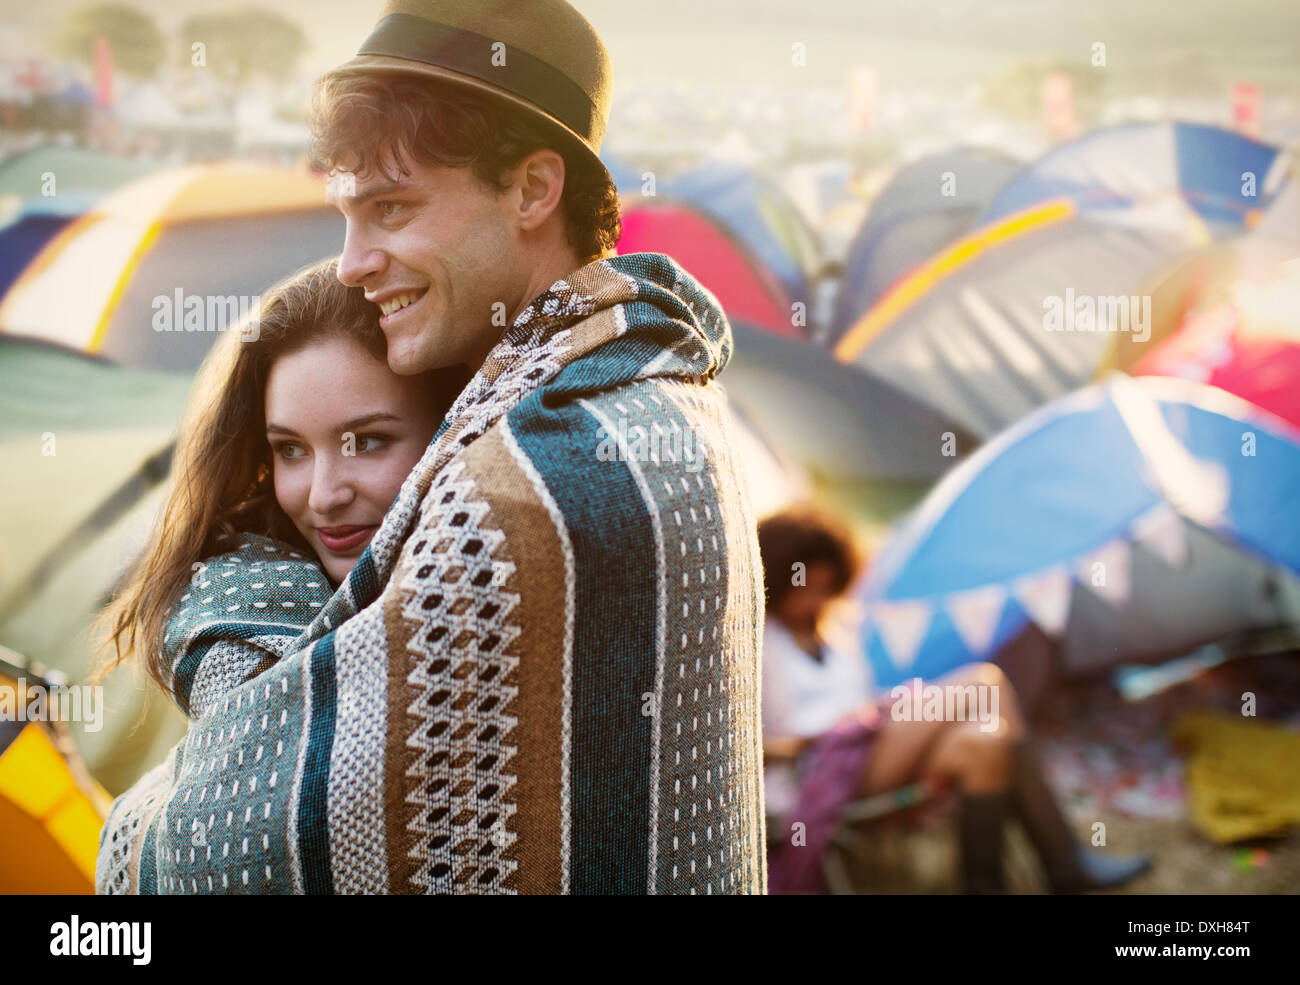 Couple wrapped in a blanket outside tents at music festival - Stock Image